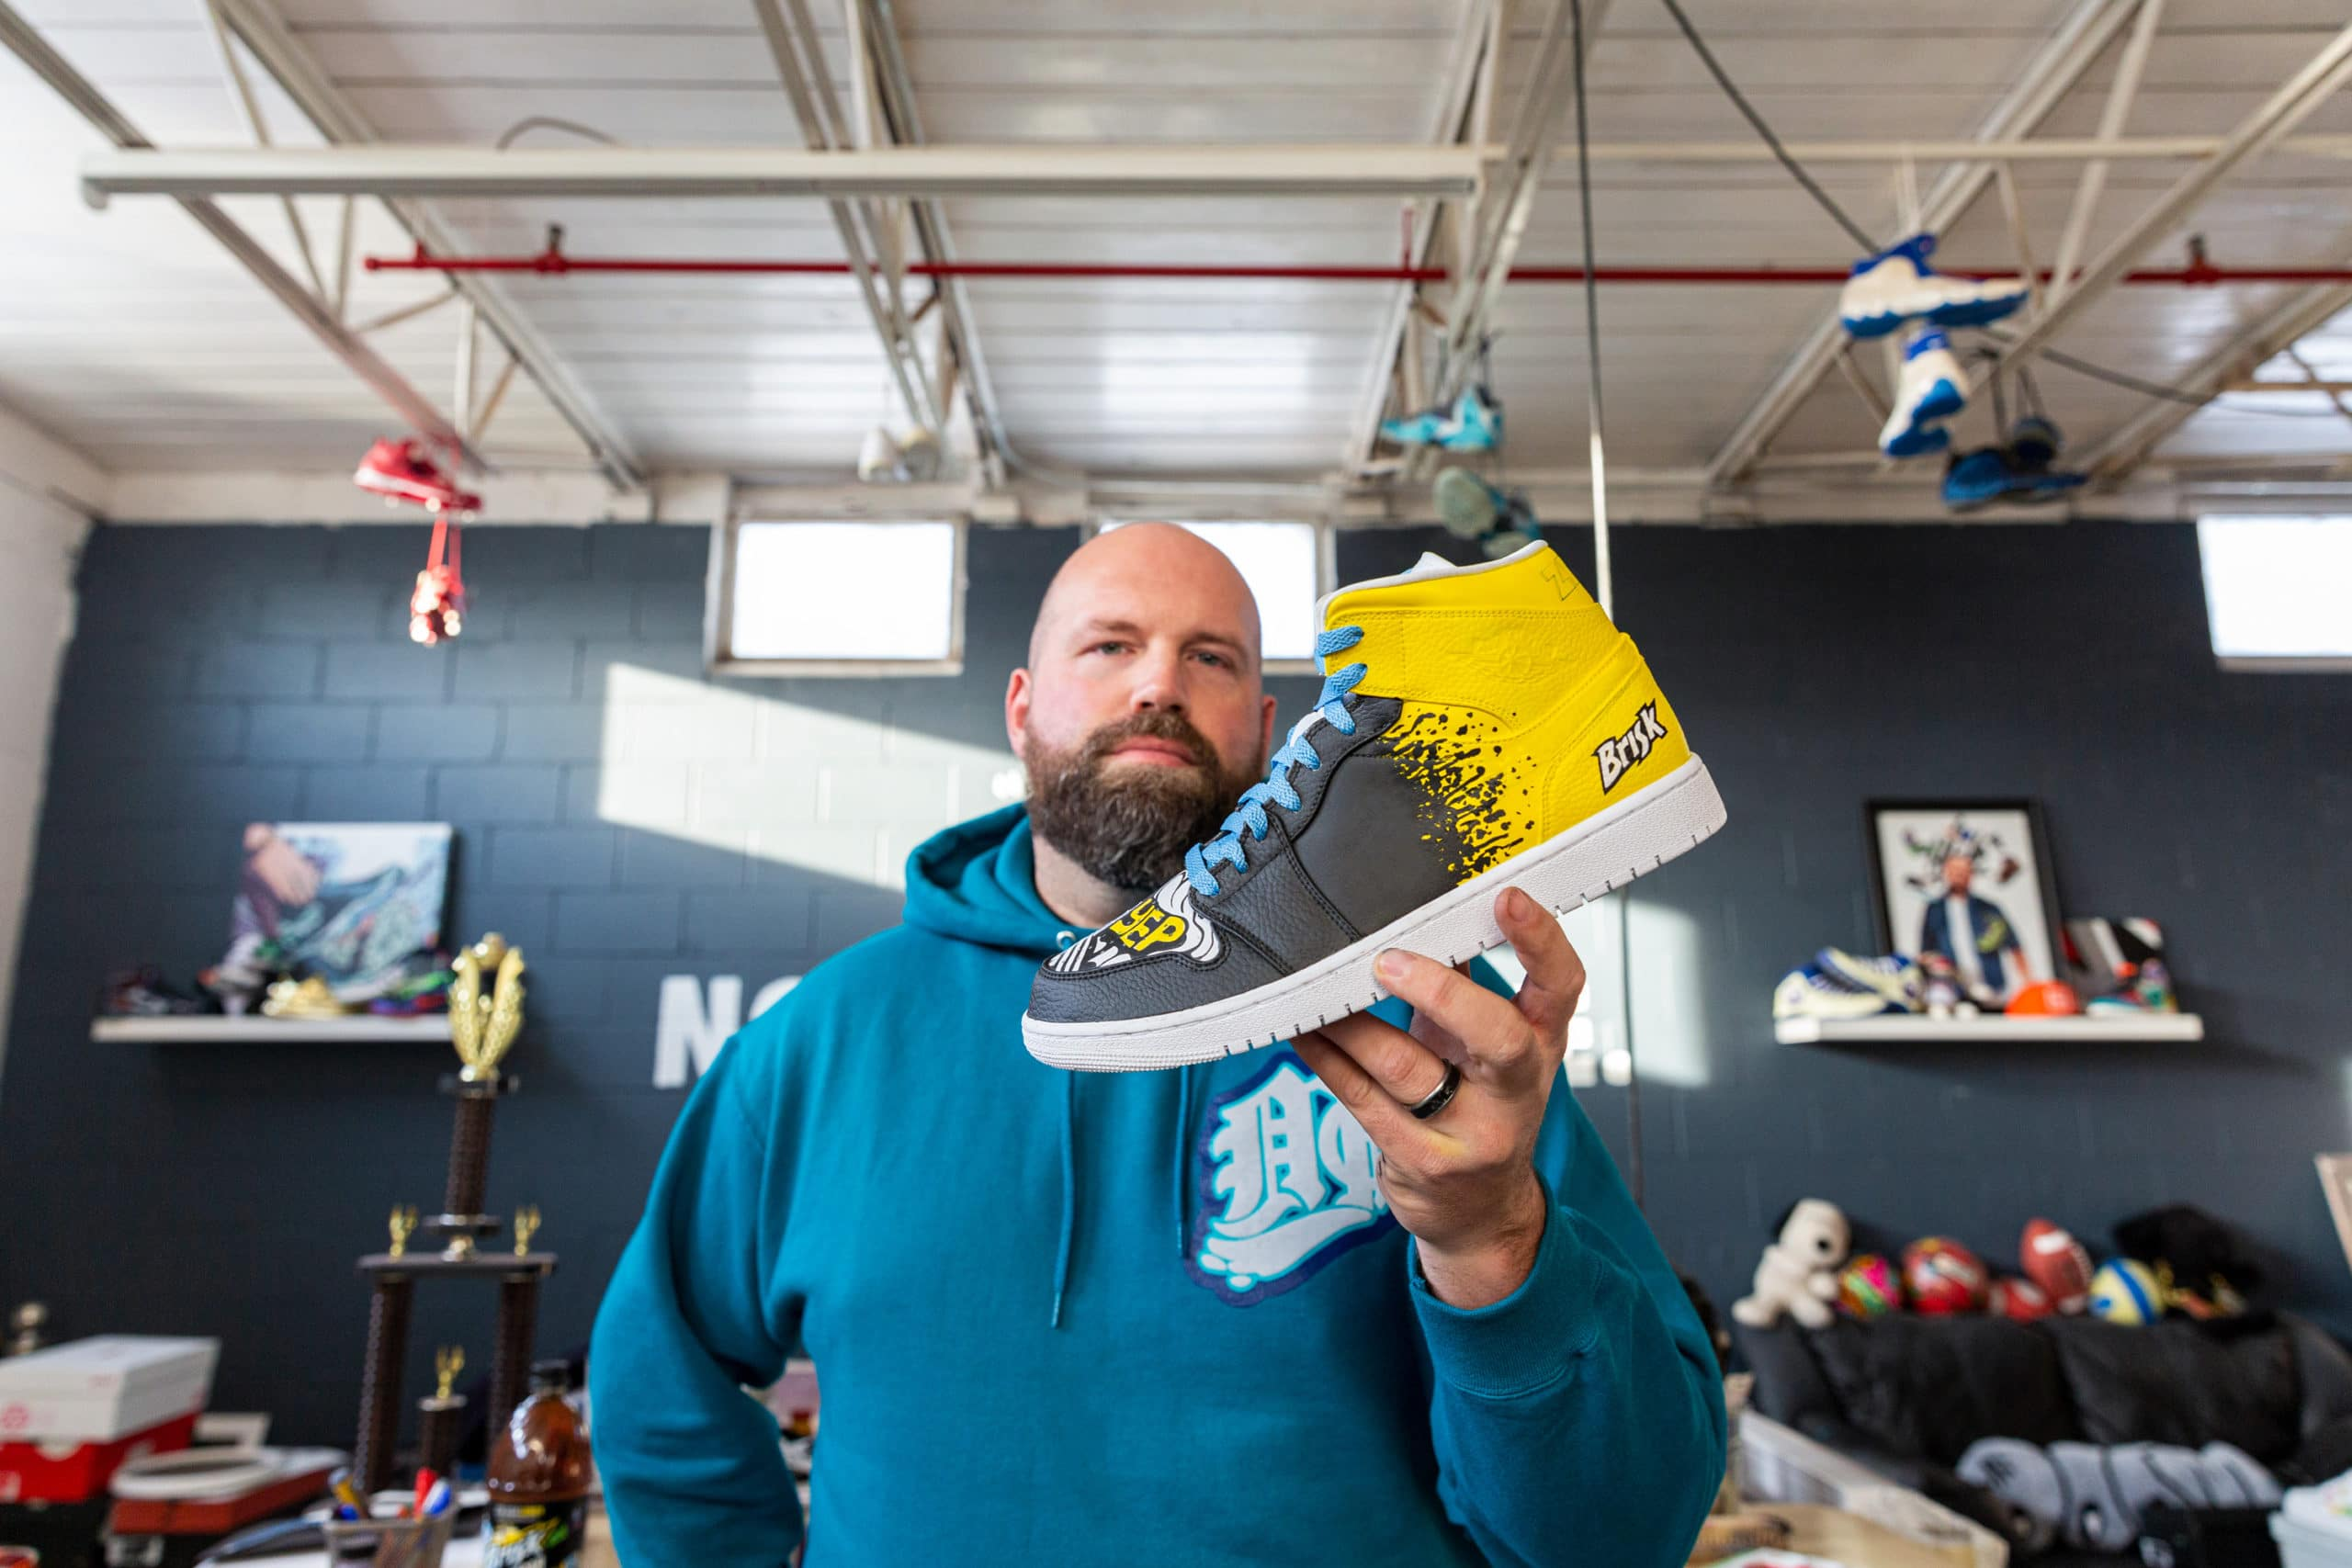 Brisk launches Zero Sugar Lemon Iced Tea with a sneaker collab with Mache 12